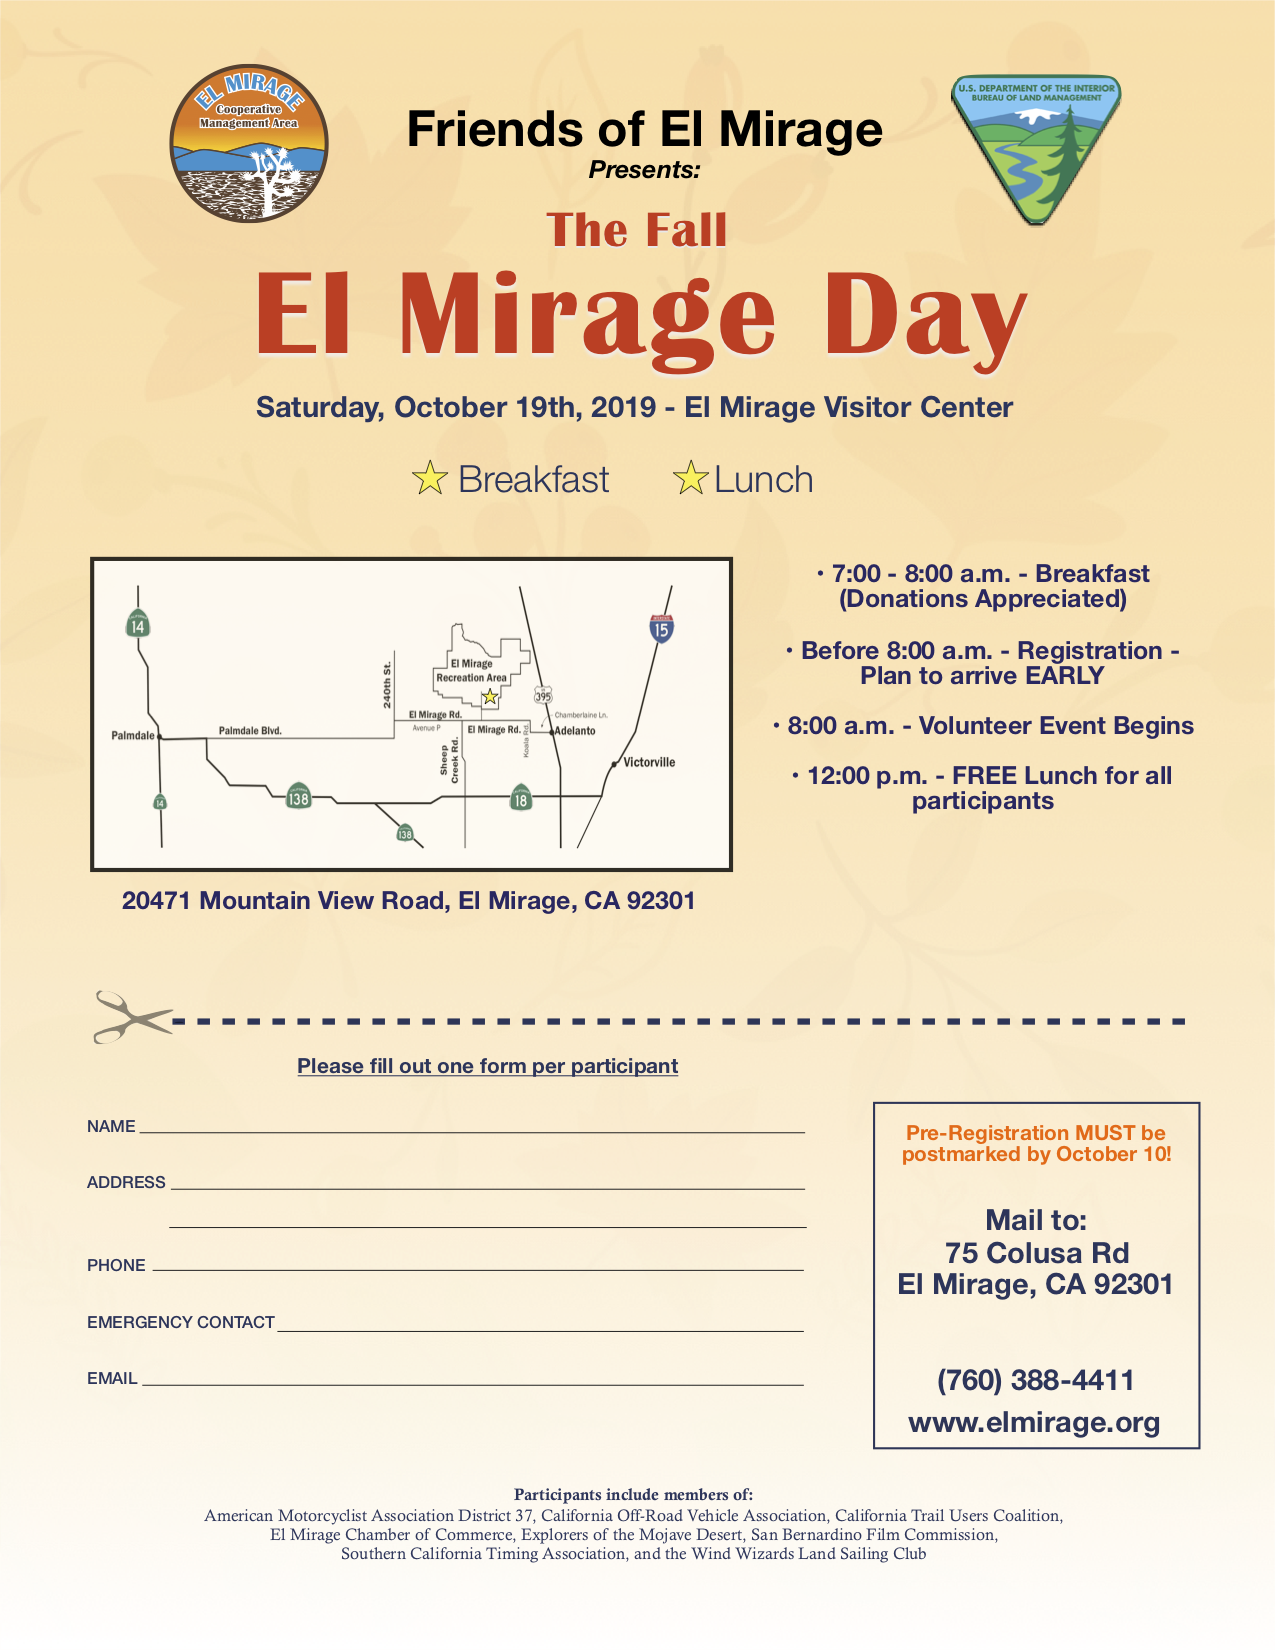 This image is the Fall Annual El Mirage Day registration/flyer that will be on May 4th, 2019.